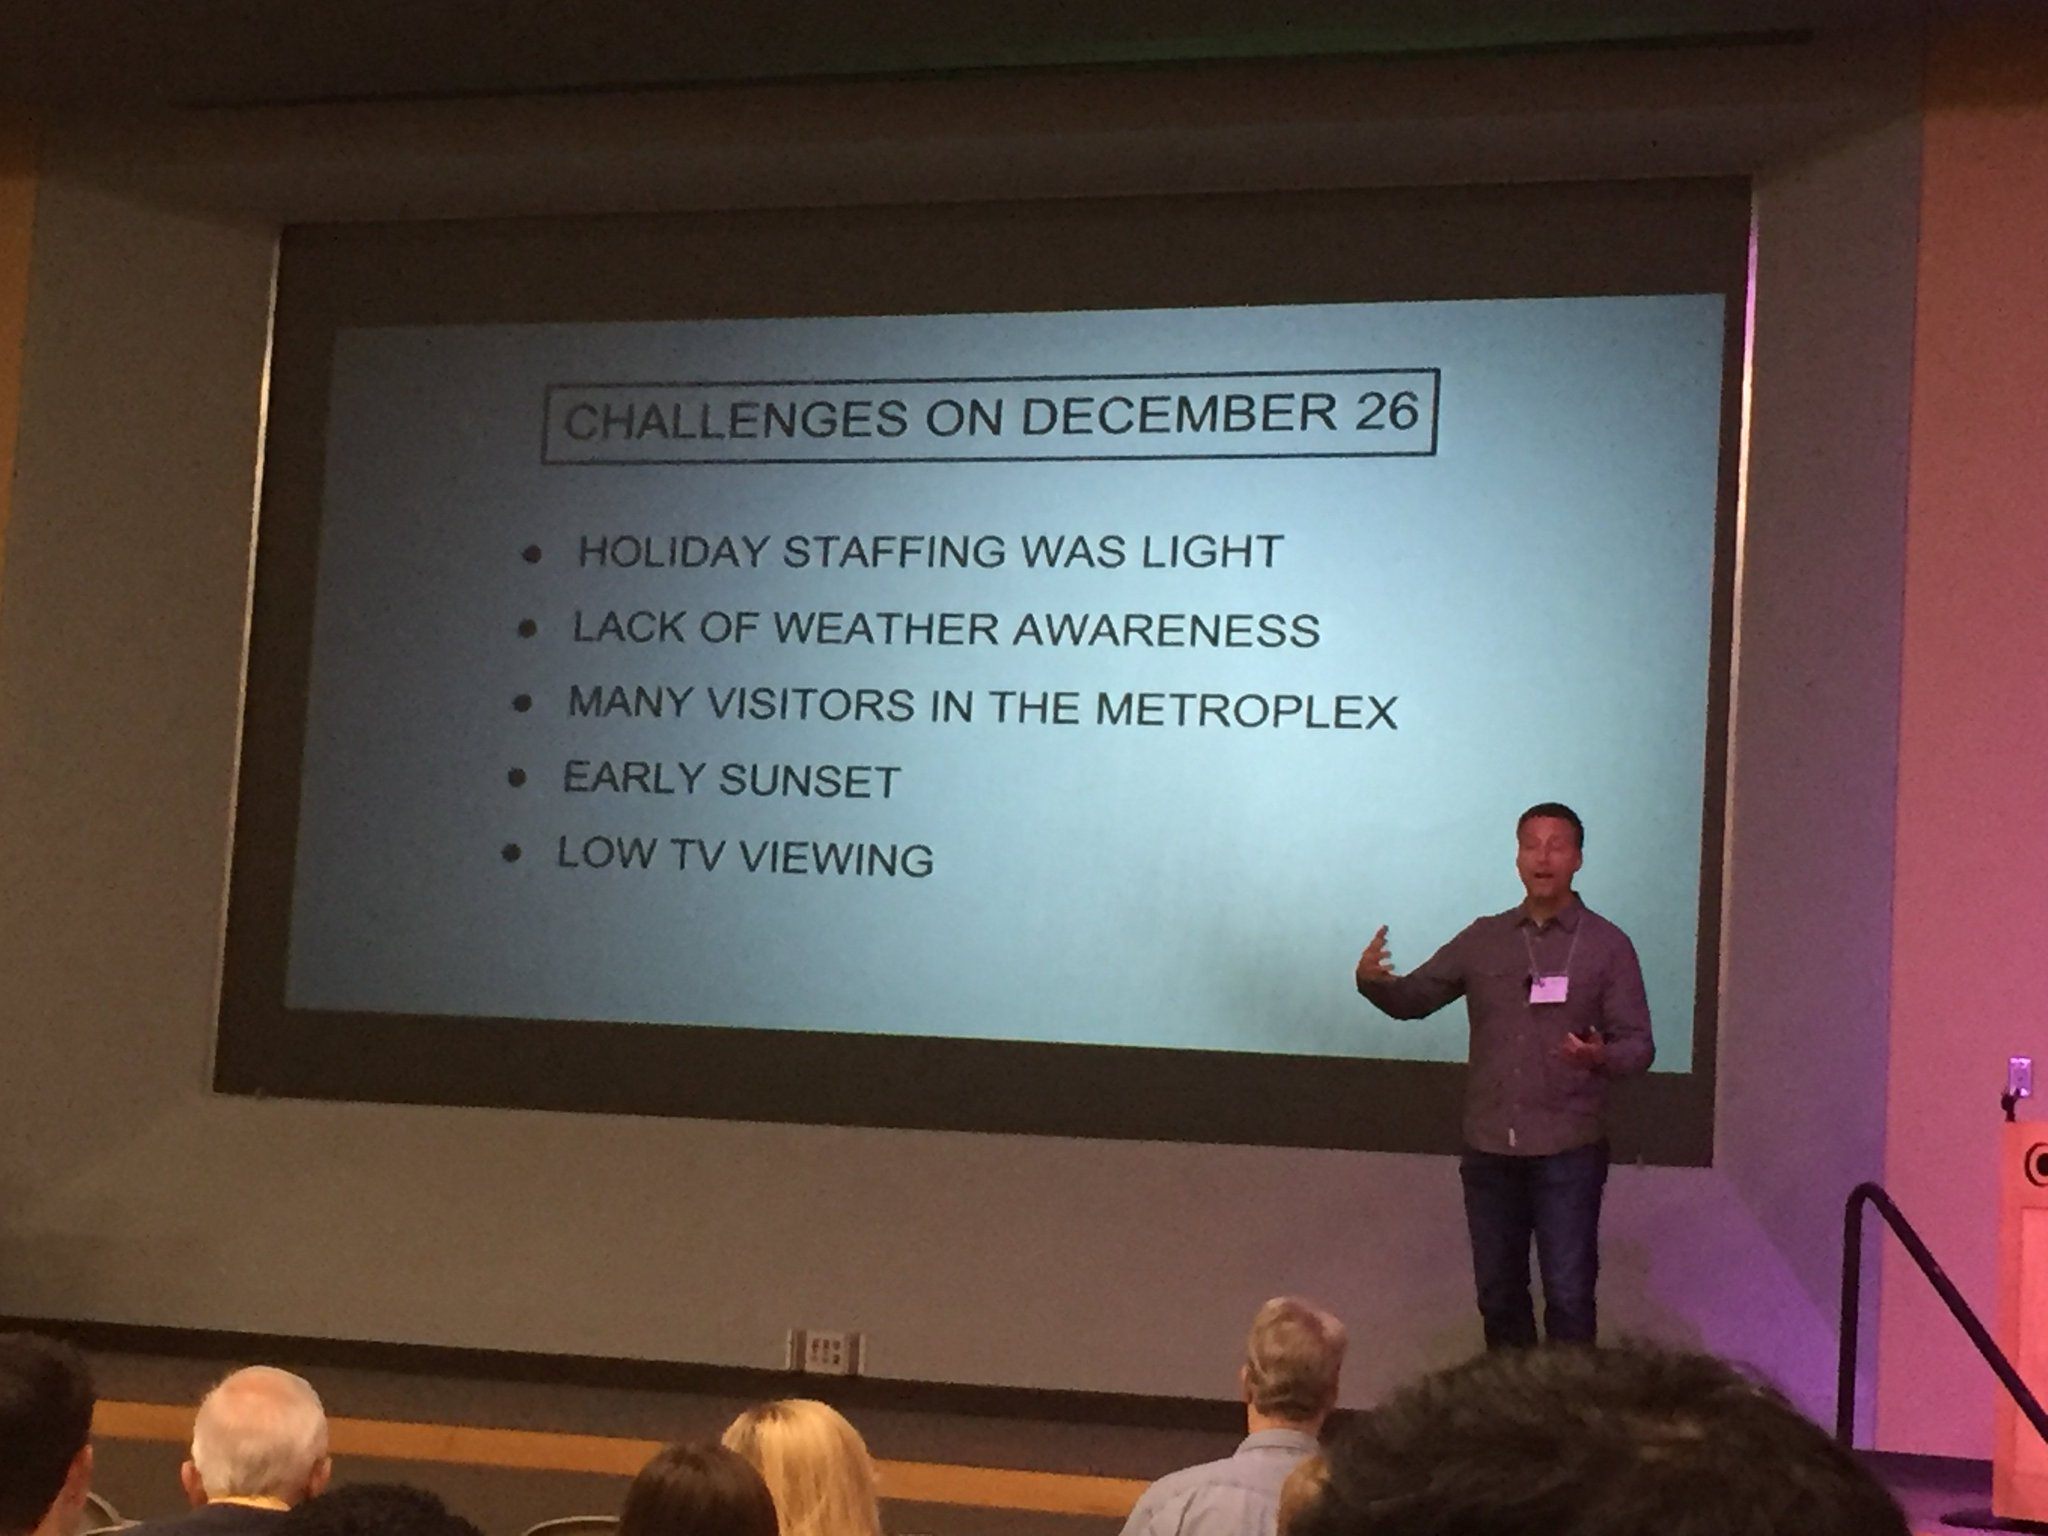 …Day after Christmas presented interesting challenges in Severe weather messaging via @RickMitchellWX #TXWX2017 https://t.co/0mJJim0Oll